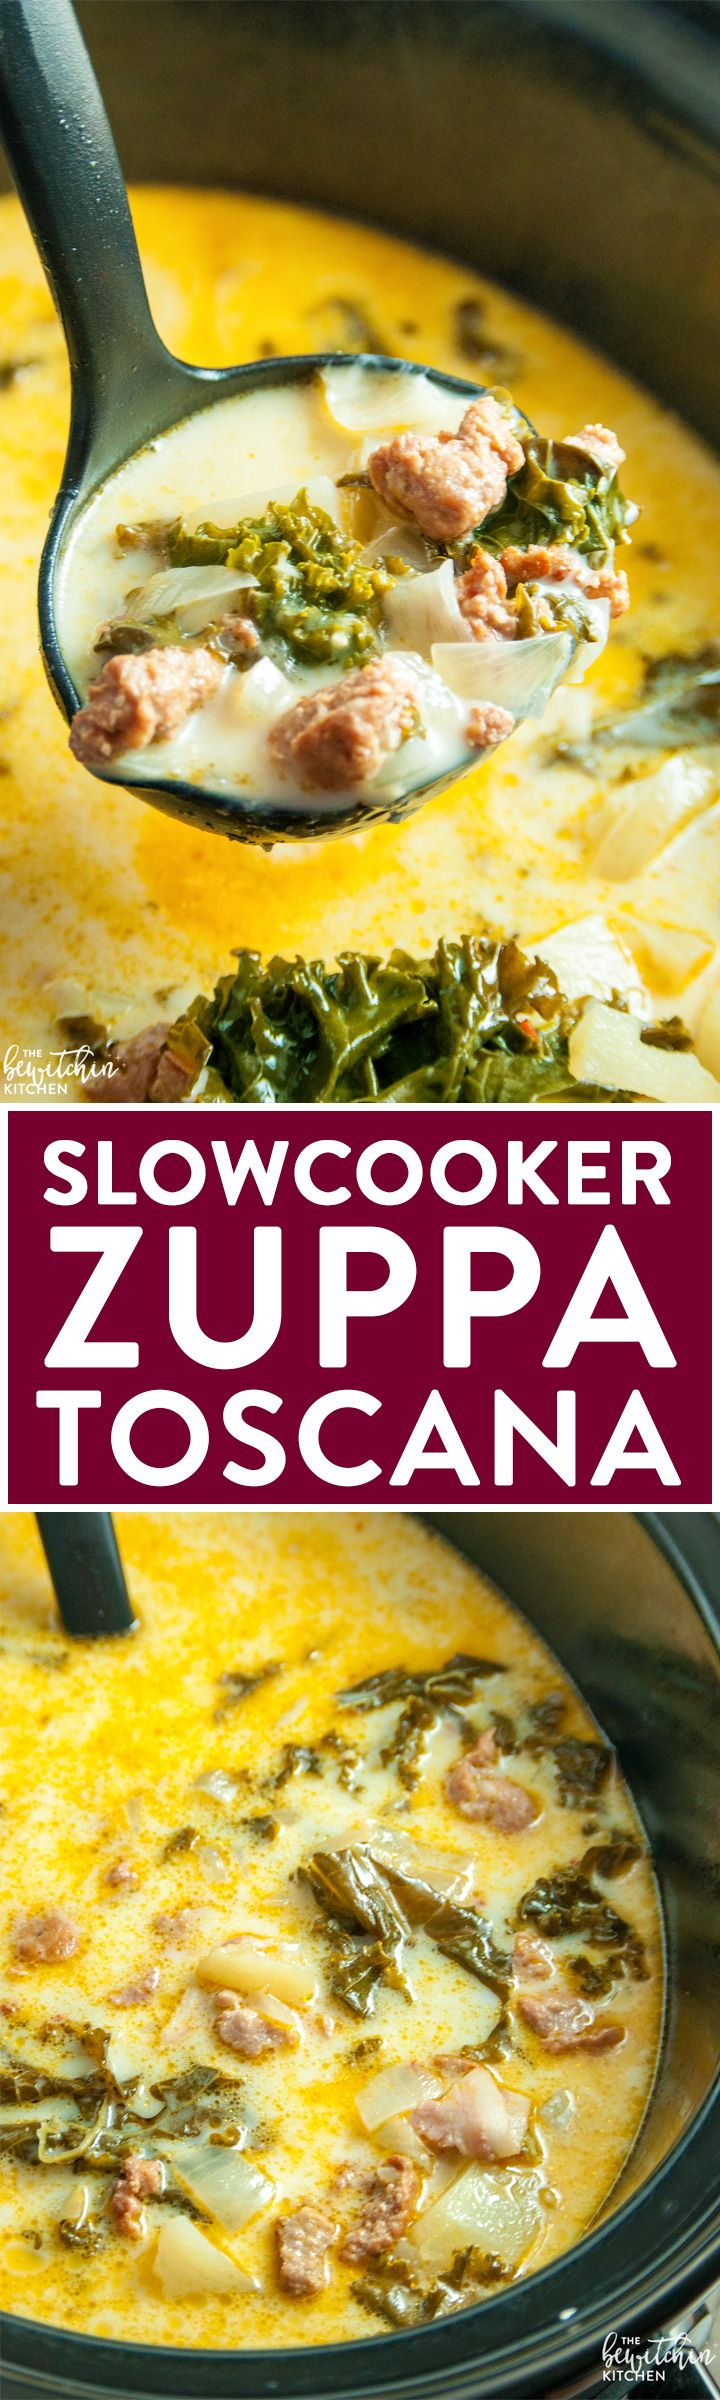 Slow Cooker Zuppa Toscana - a simple soup recipe that's based off an Olive Garden favorite. | thebewitchinkitchen.com